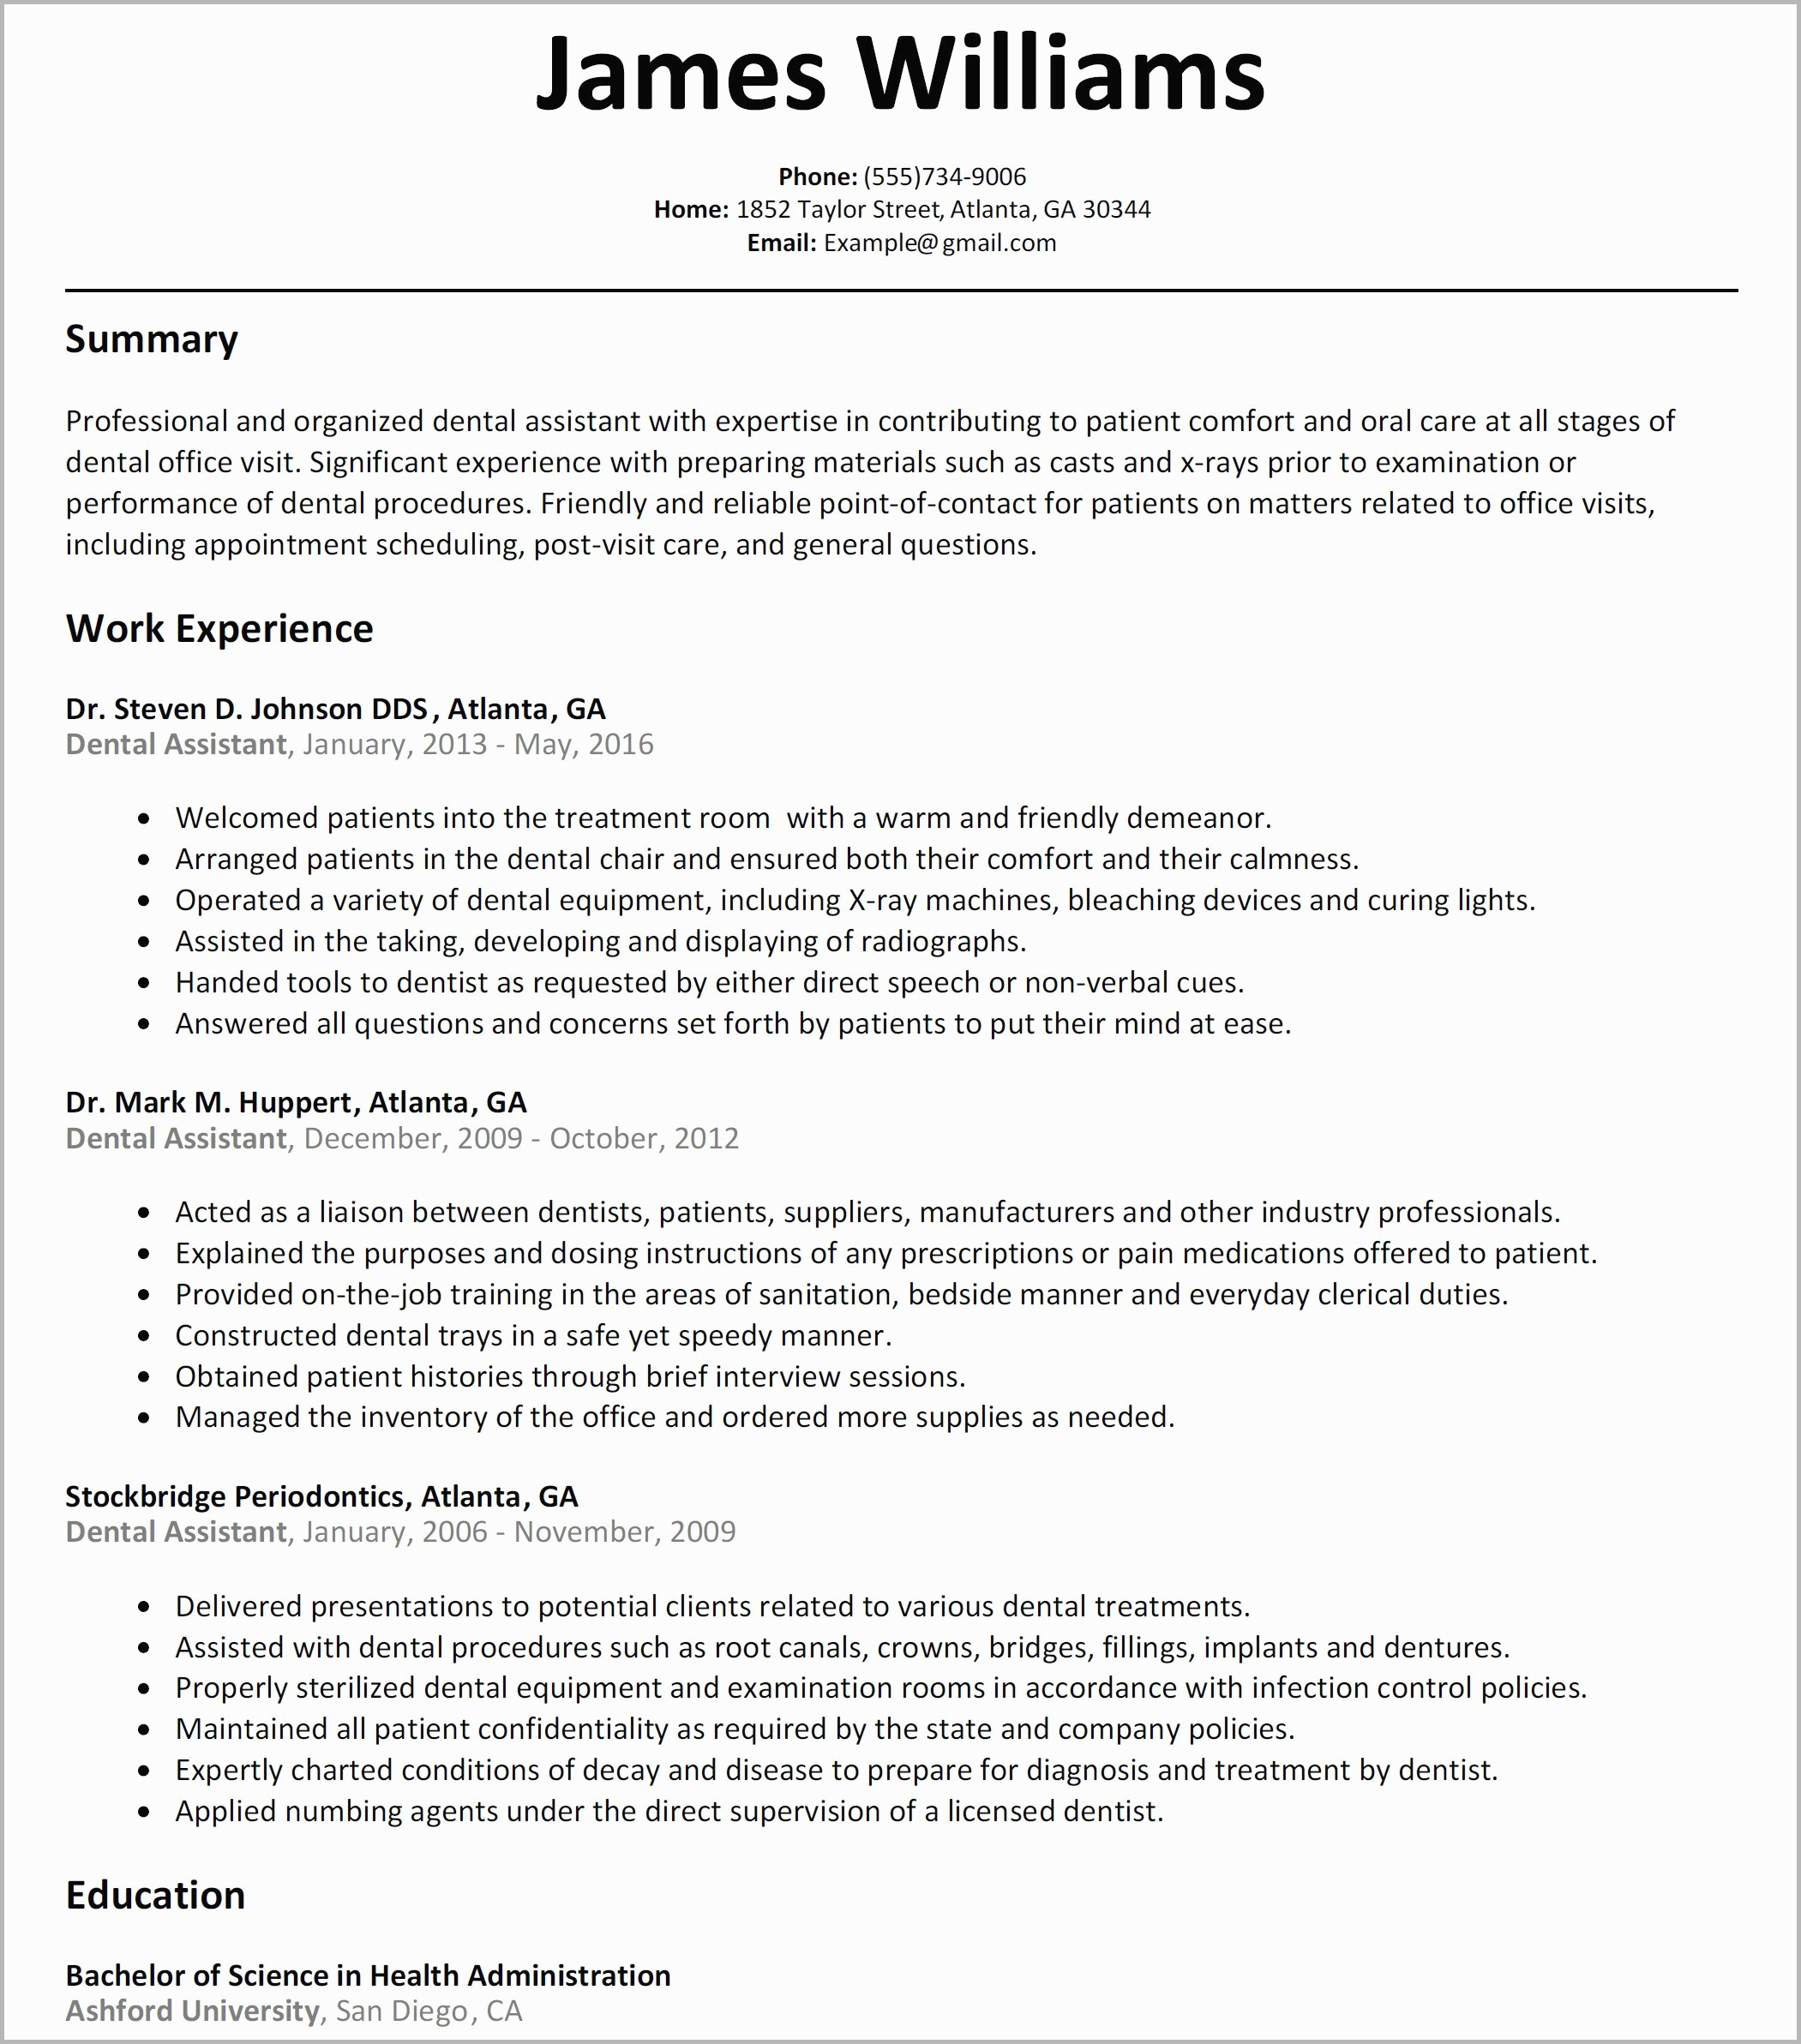 Resume for Dental Office Manager - Medical Fice Manager Resume Samples Refrence Fice Manager Resume